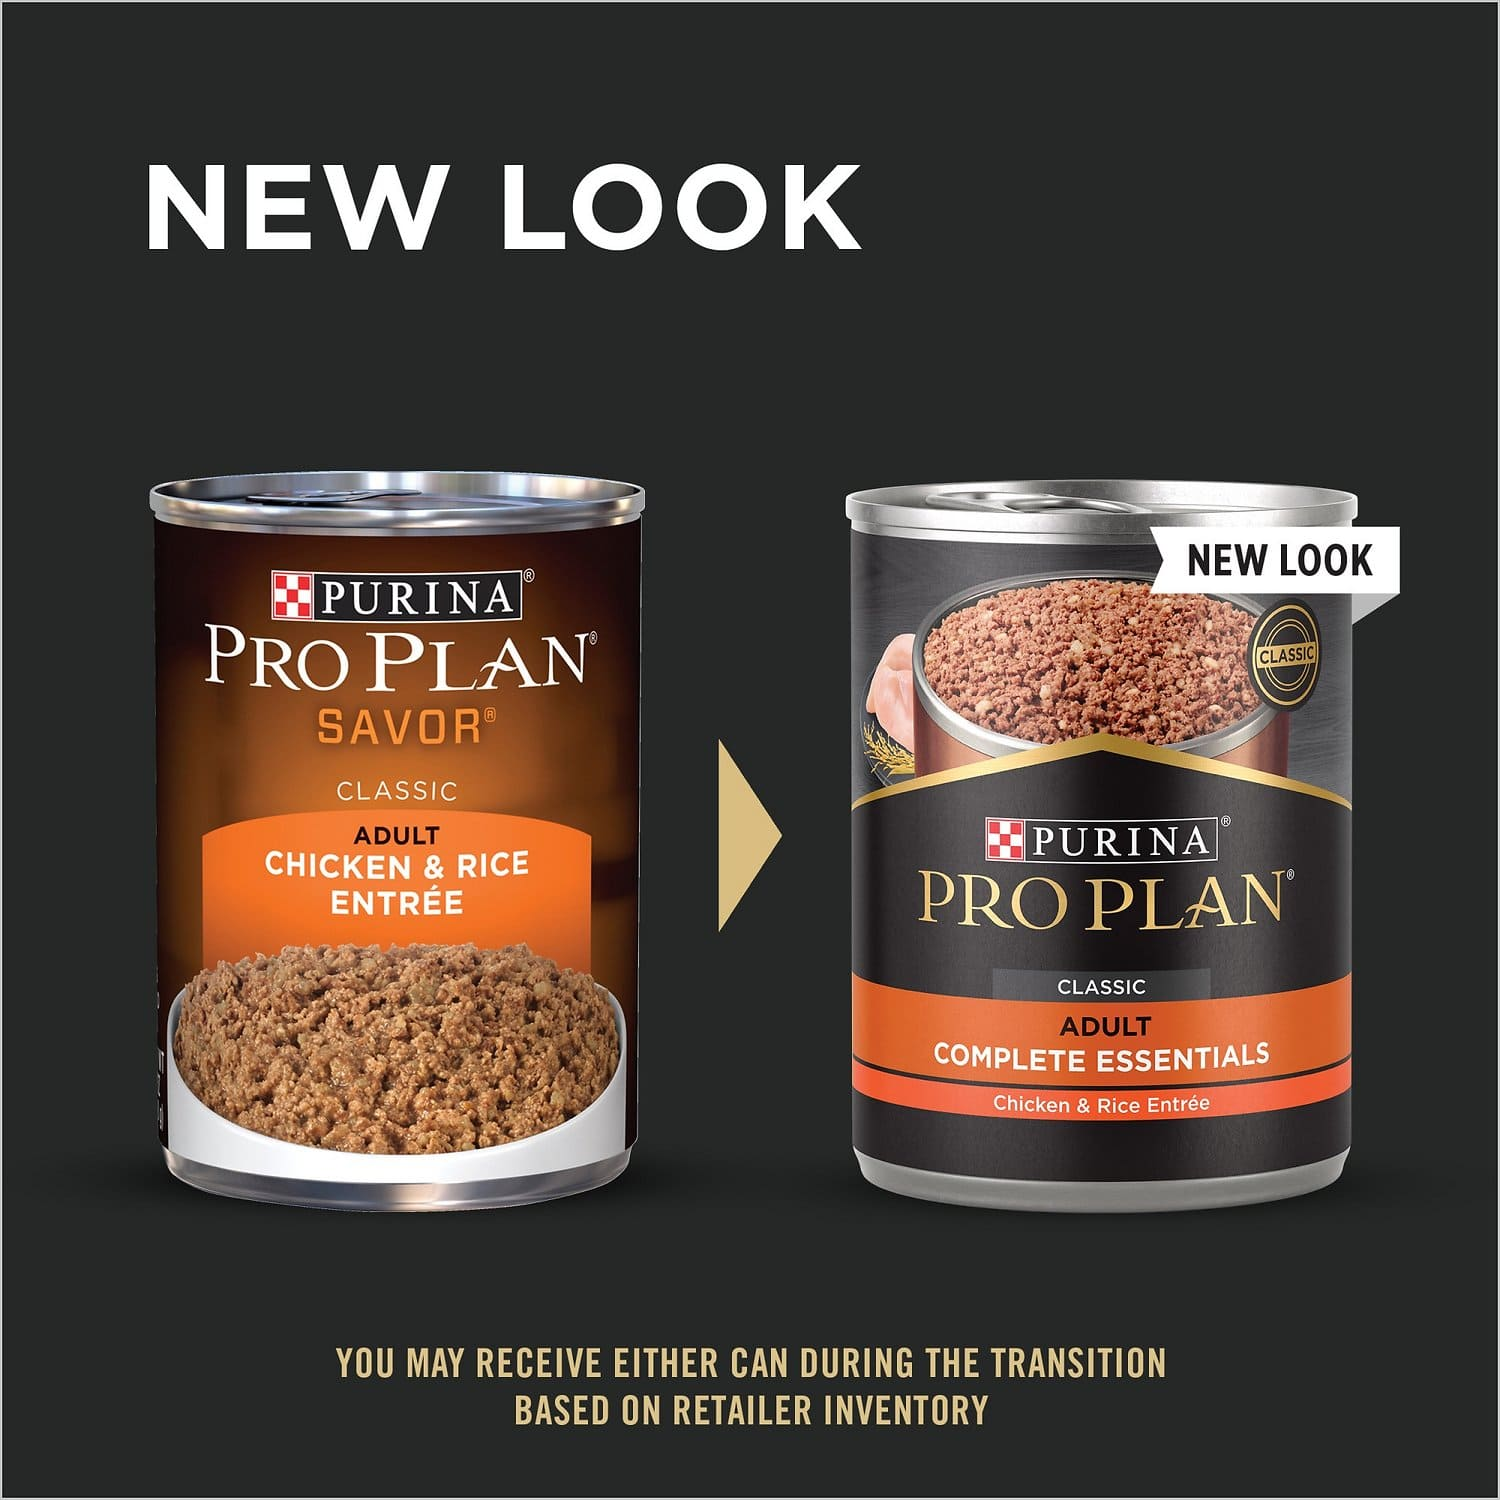 Purina Pro Plan Adult Complete Essentials Entrée 12 x 13 oz can Chicken & Rice 2